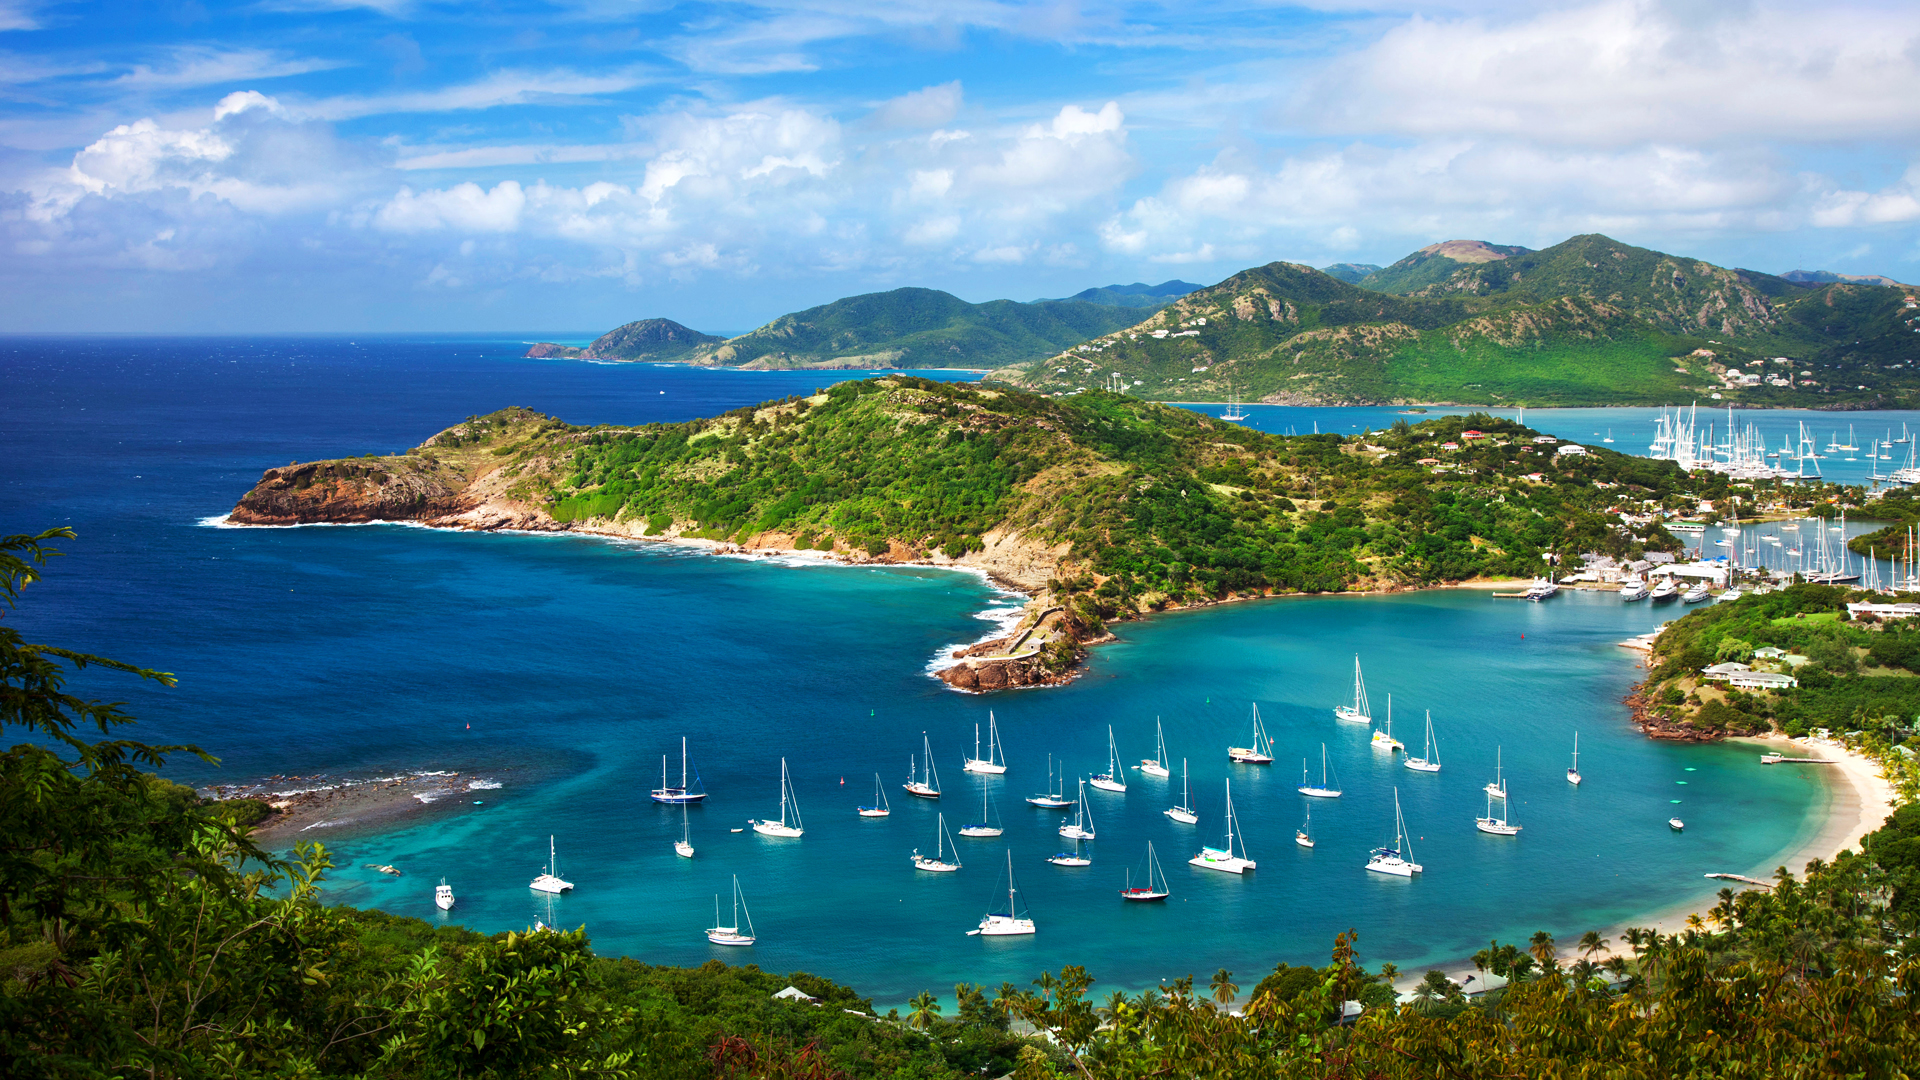 Lookout view from Shirley Heights over Admiral Nelson's Dockyards, Antigua, Leeward Islands, West Indies. Image shot 2012. Exact date unknown.